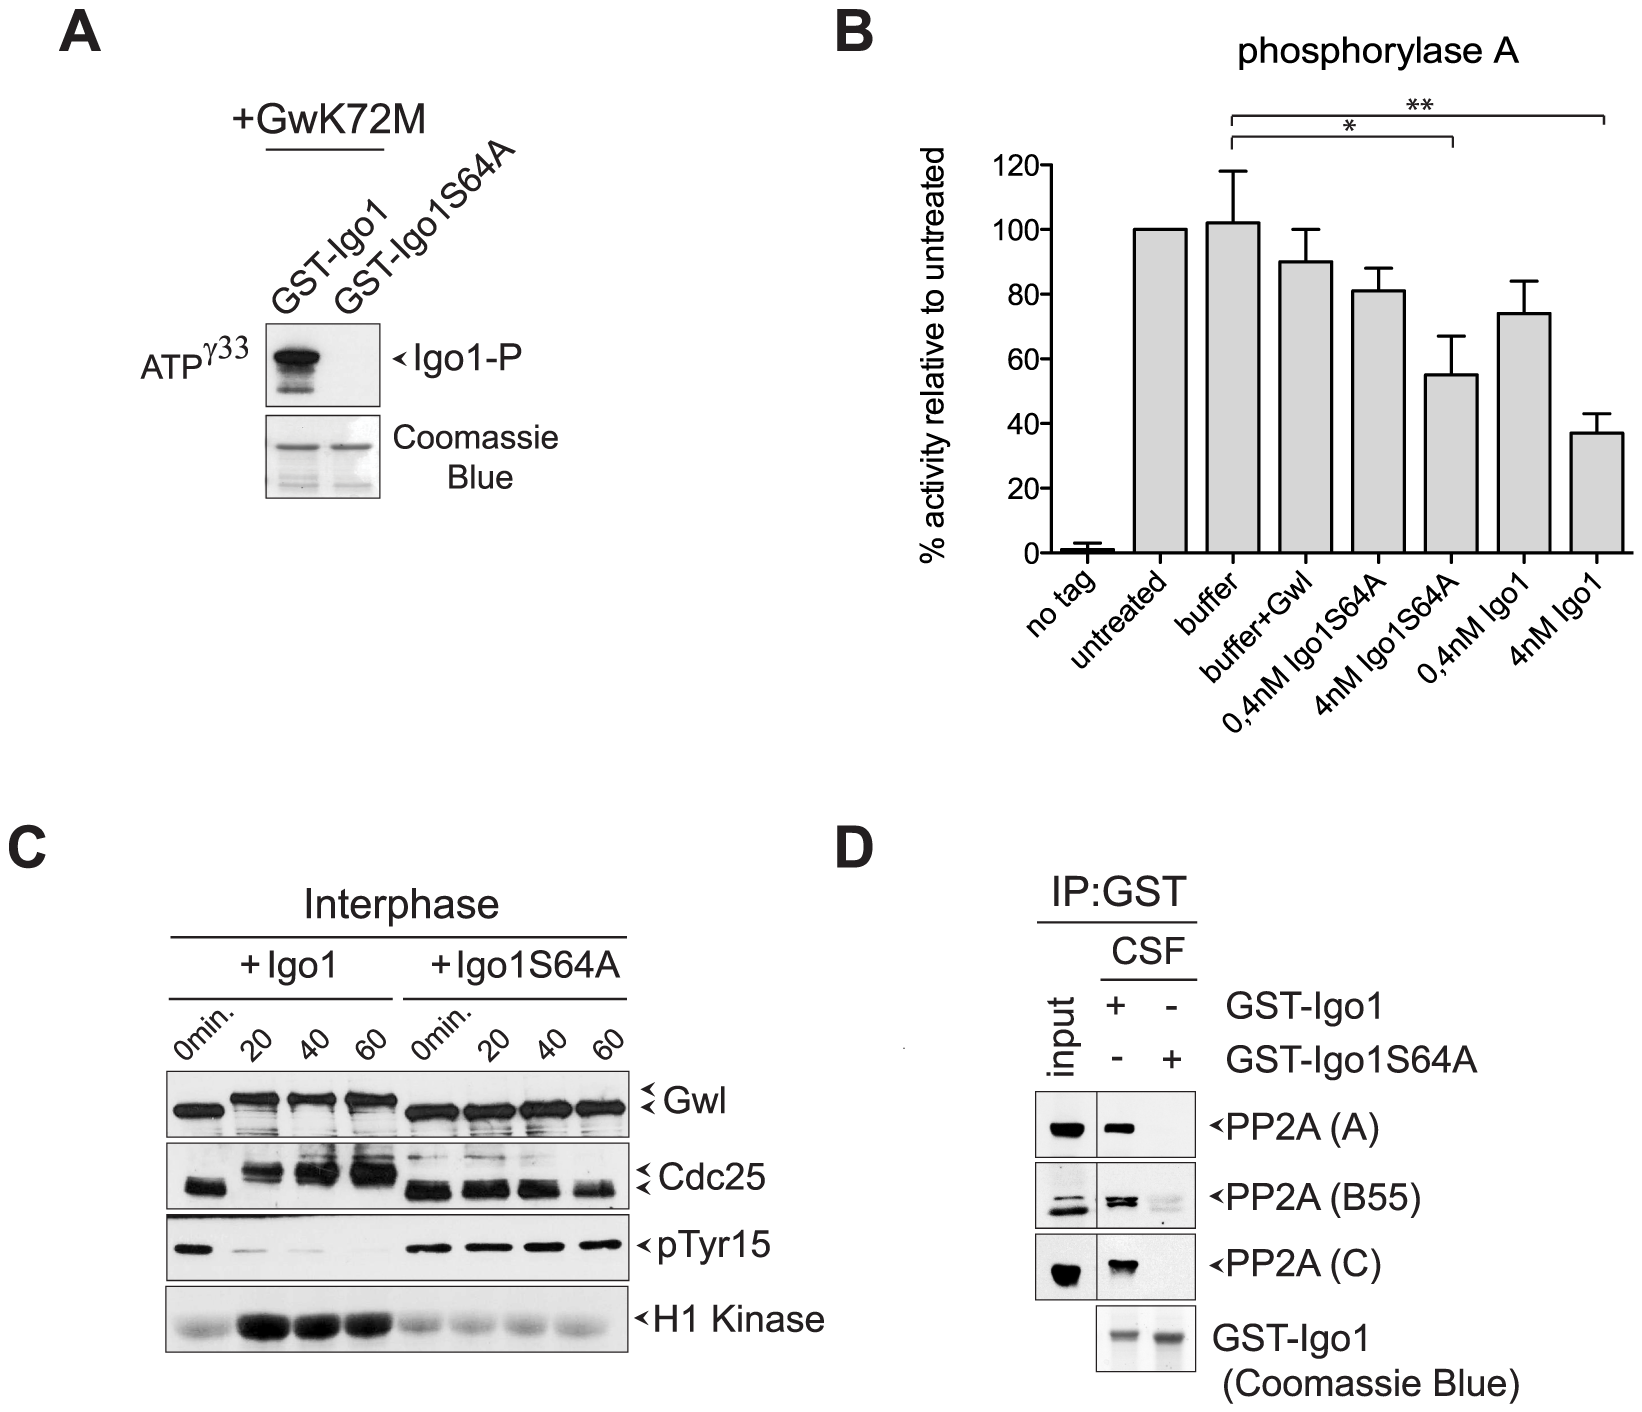 Yeast Igo1 induces mitotic entry in <i>Xenopus</i> egg extracts.